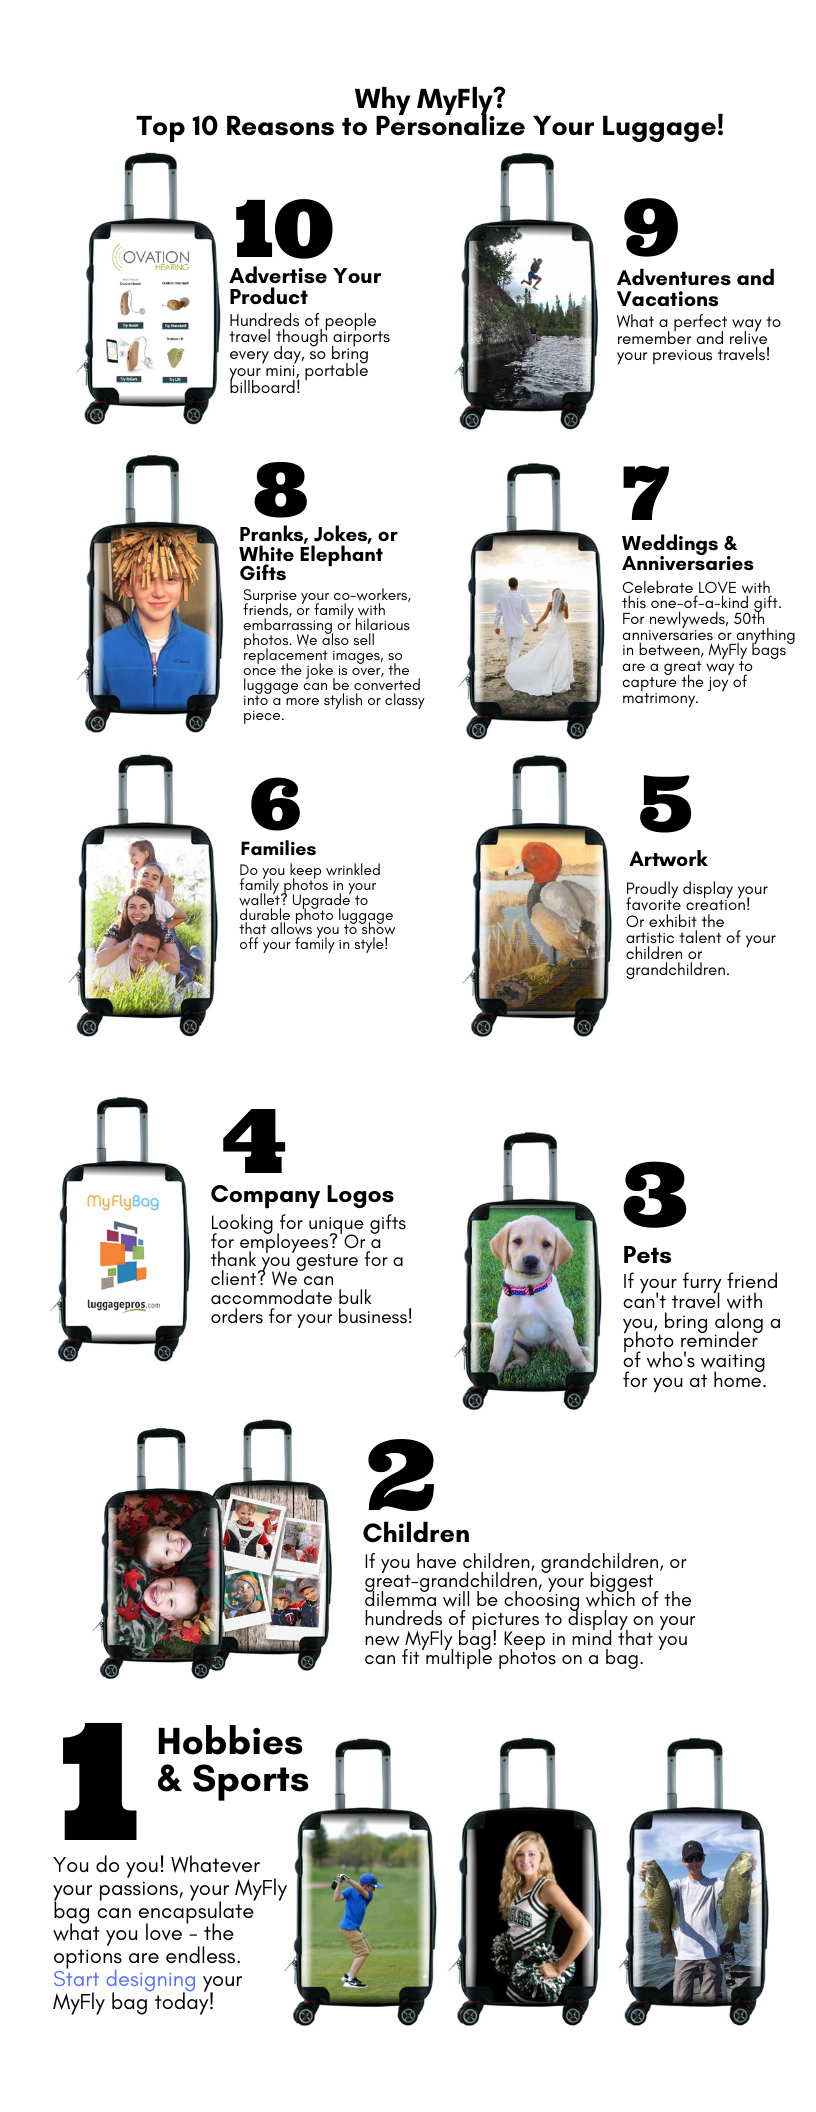 Top 10 Reasons to Personalize Your Luggage